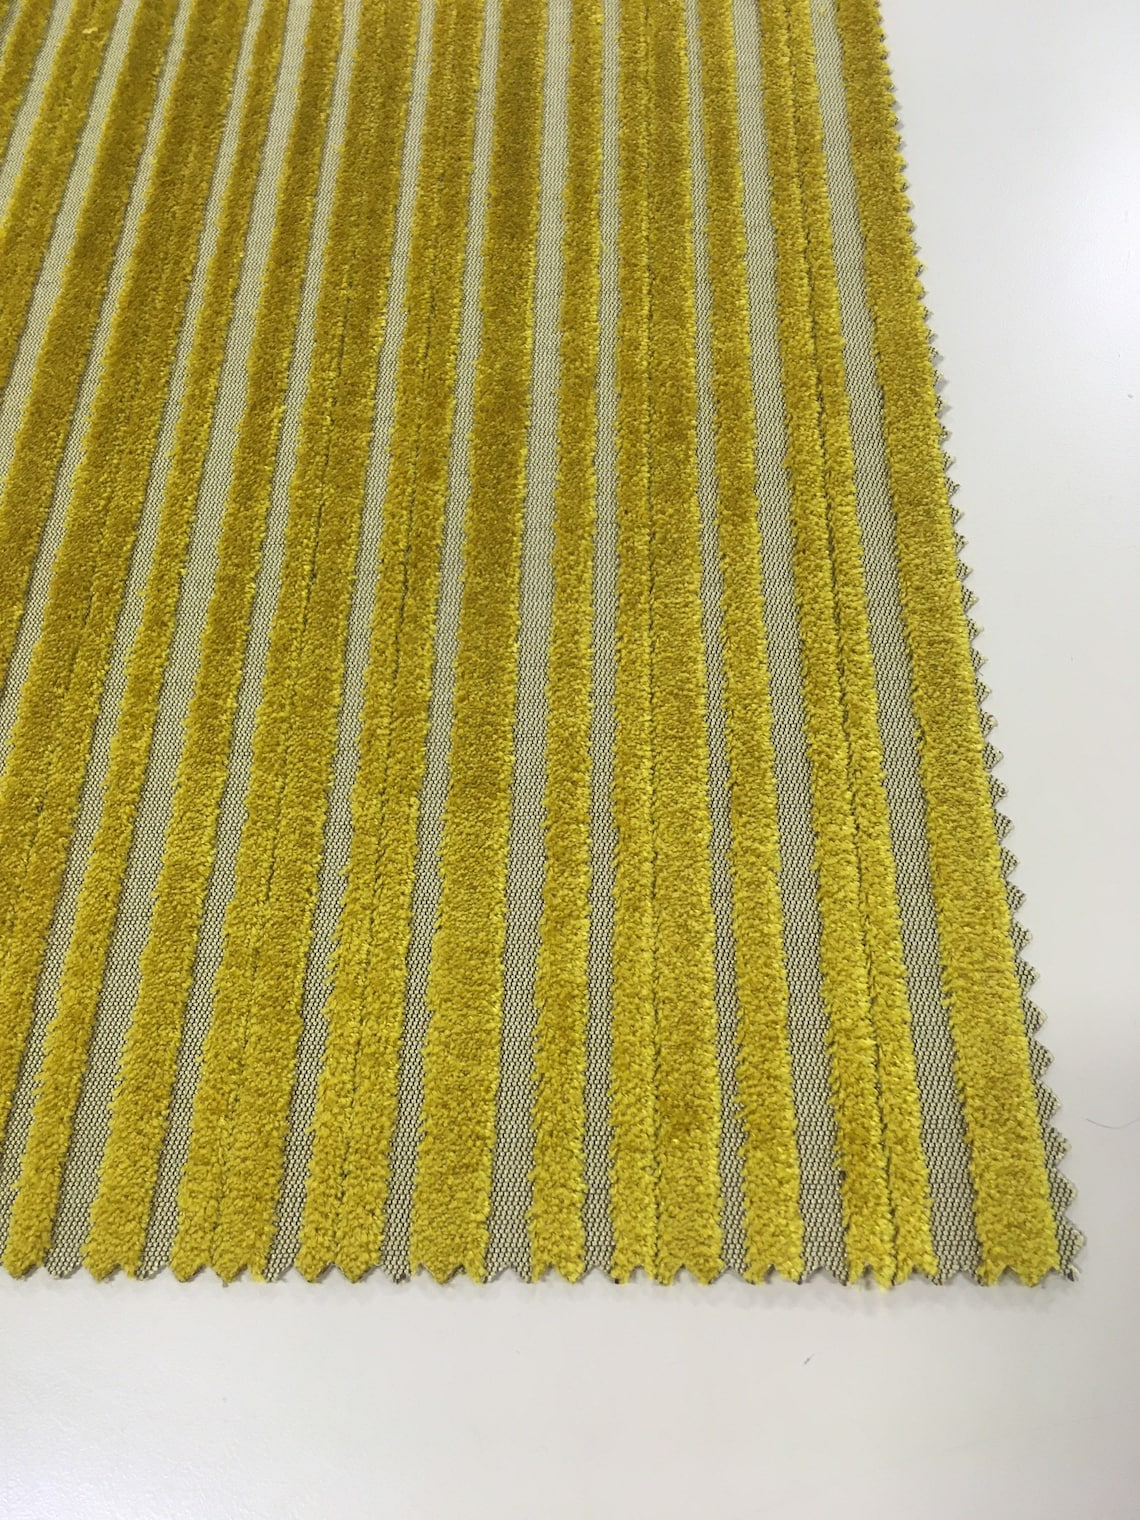 Striped Italia-Yellow Upholstery Fabric-Citrine Upholstery Fabric-Striped Velvet Upholstery-Commercial Upholstery-Upholstery Fabric